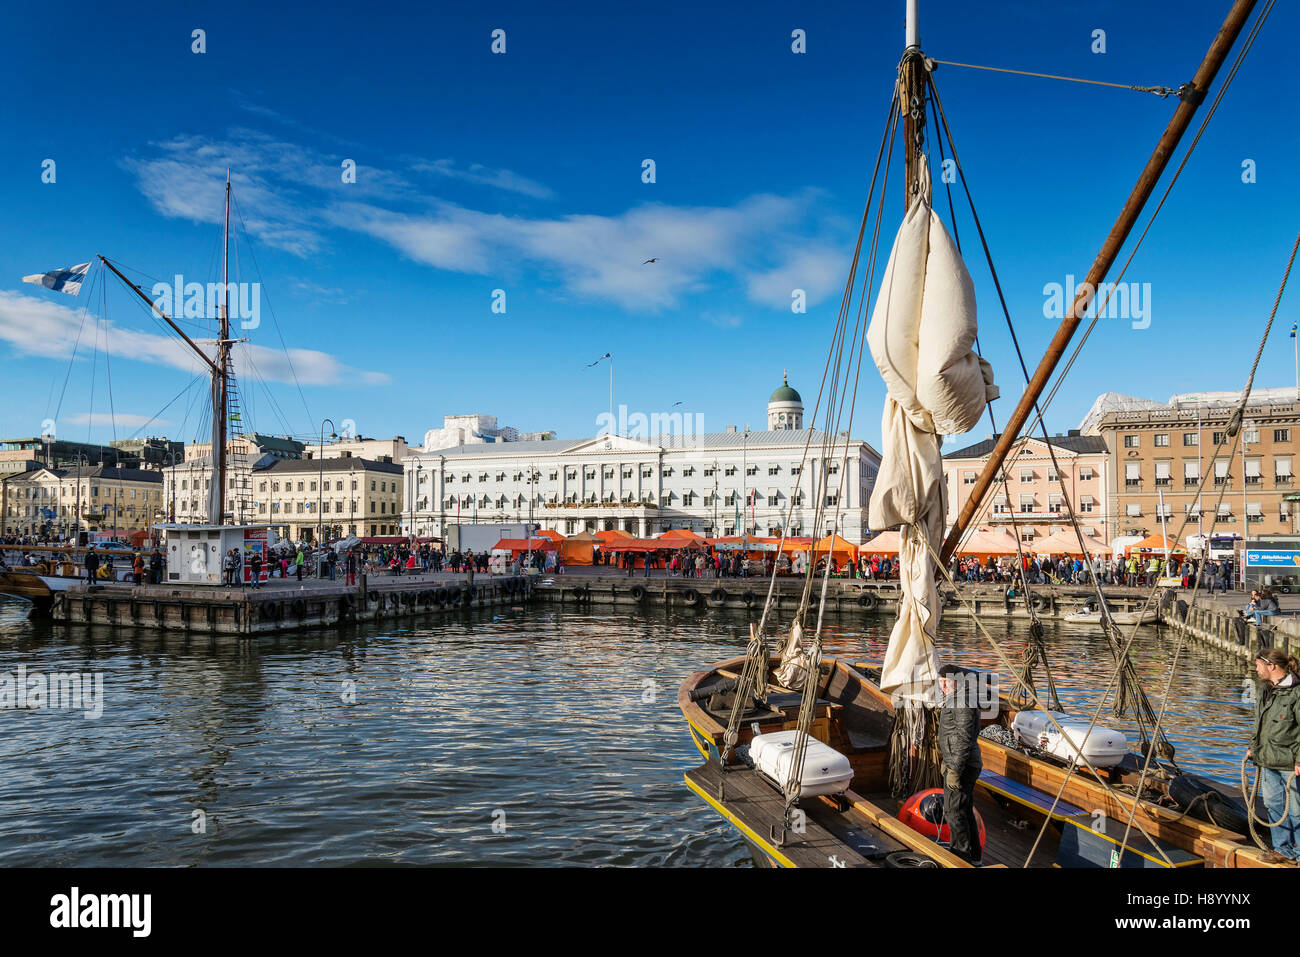 old wooden sailing boats in helsinki city central harbour port finland - Stock Image